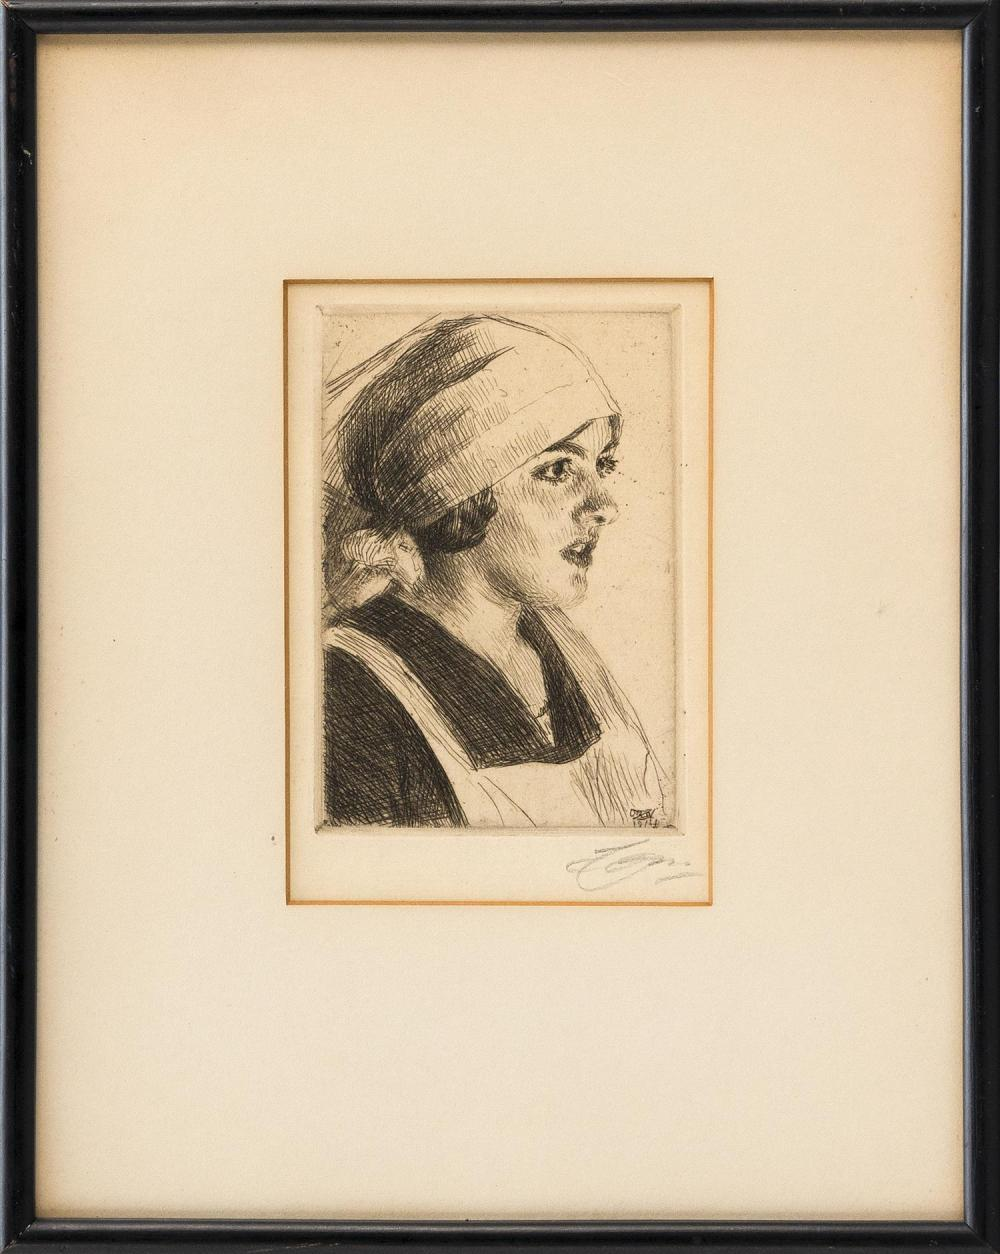 "ANDERS ZORN, Sweden, 1860-1920, Etching on paper depicting the head of a woman., Mat opening 5.75"" x 4"". Framed 12"" x 9.5""."